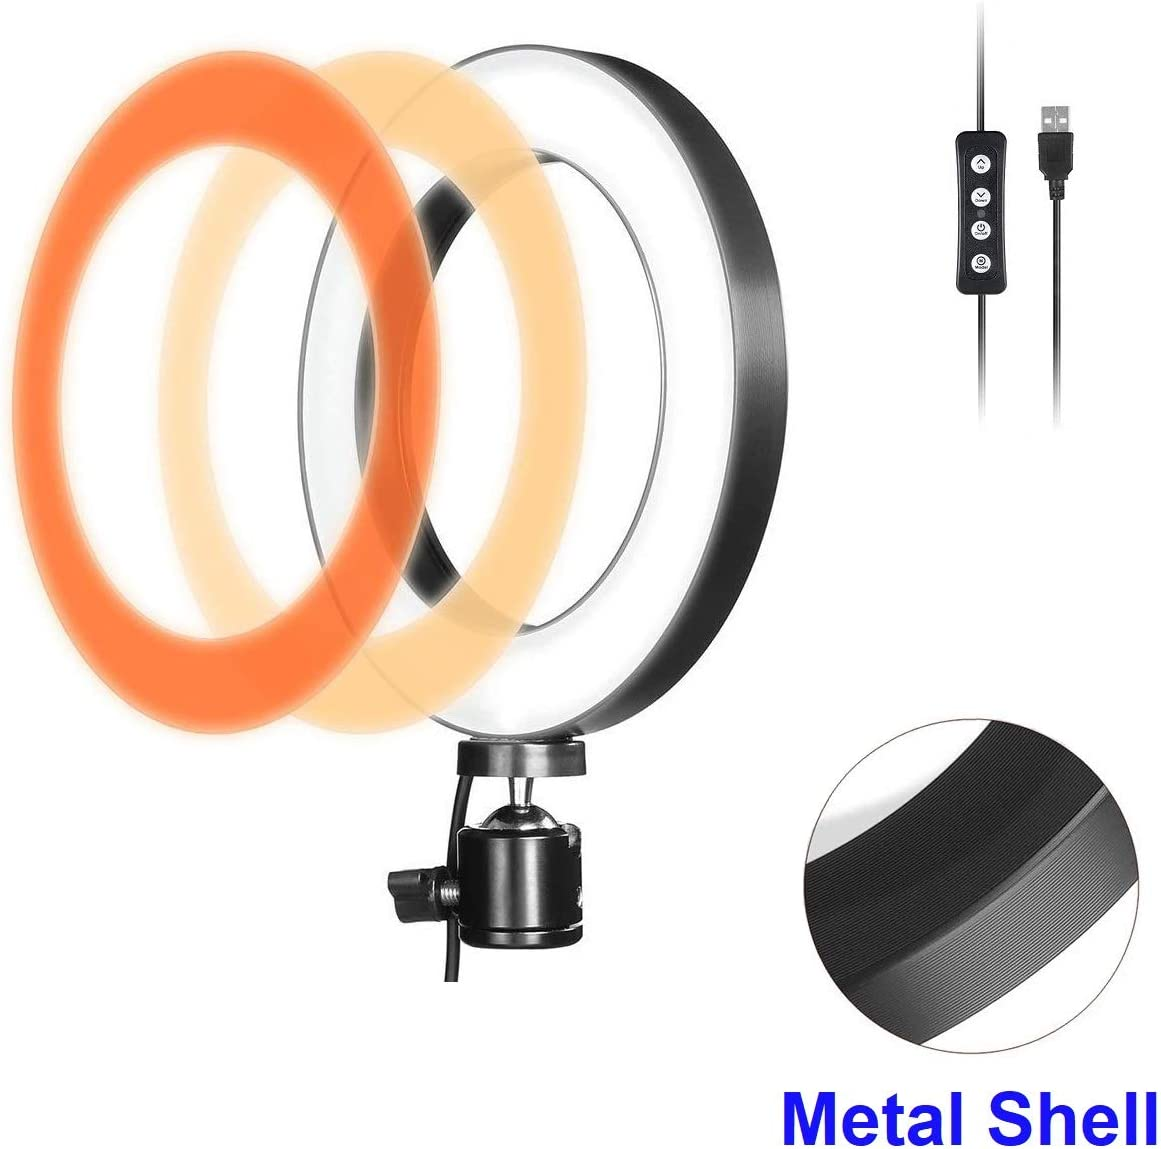 LED Ring Light 6 inches for YouTube Video Live Streaming Makeup Photography, Desktop USB LED Light with 3 Light Modes and 10 Brightness Level